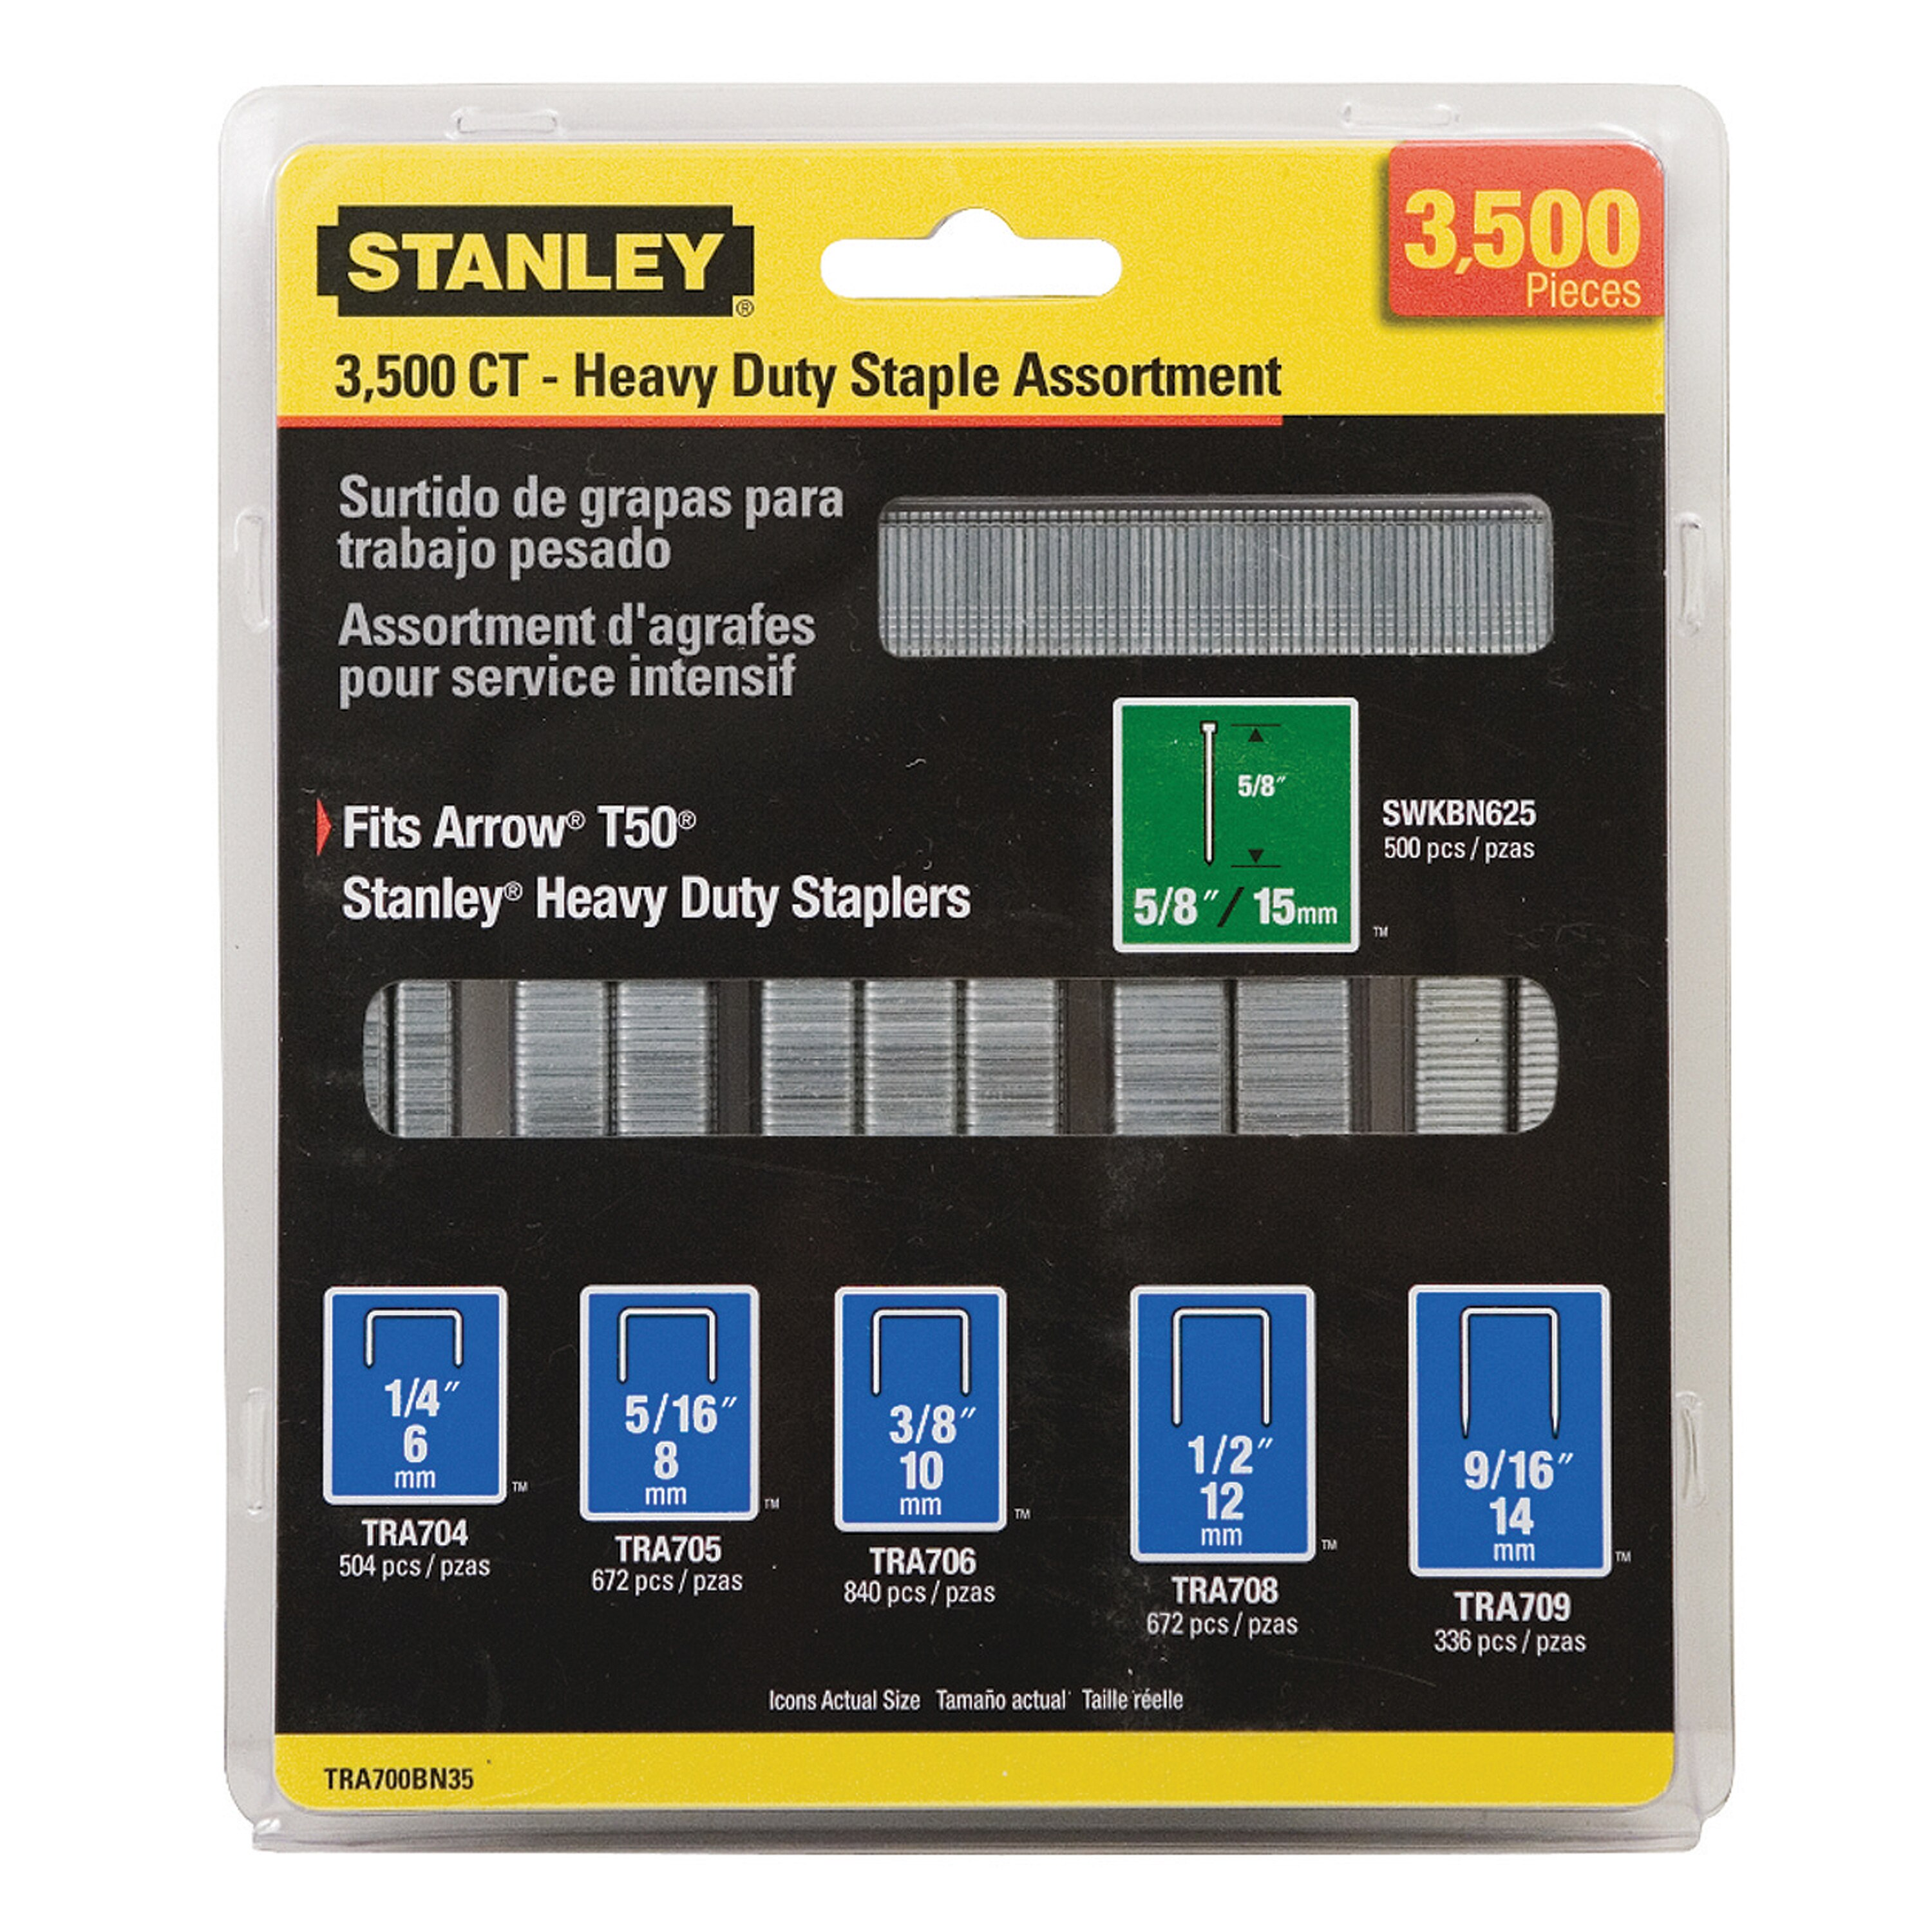 Stanley Tools - 3500 pc Heavy Duty Staple and Brand Assortments - TRA700BN35